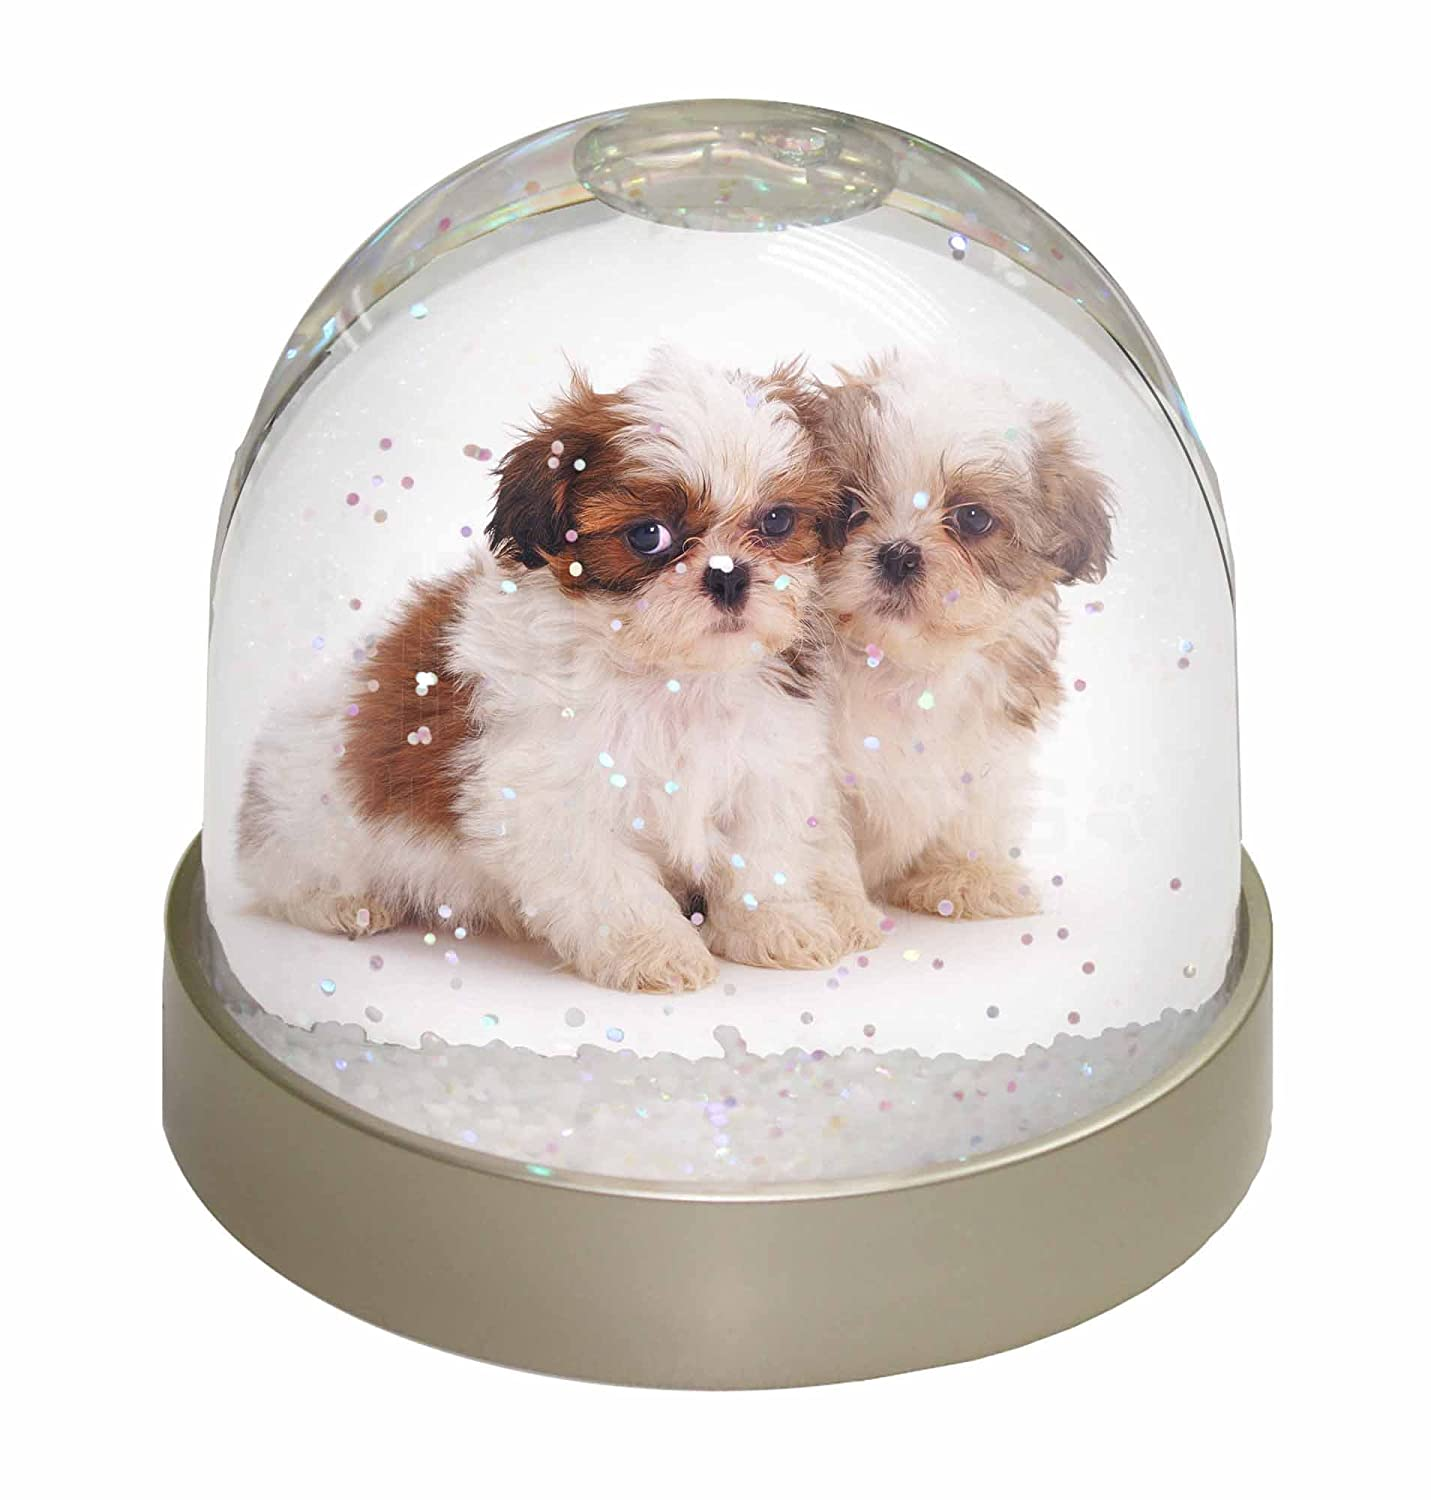 Advanta Shih-Tzu Dog Photo Snow Globe Stocking Filler Gift, Multi-Colour, 9.2 x 9.2 x 8 cm Advanta Products AD-SZ2GL